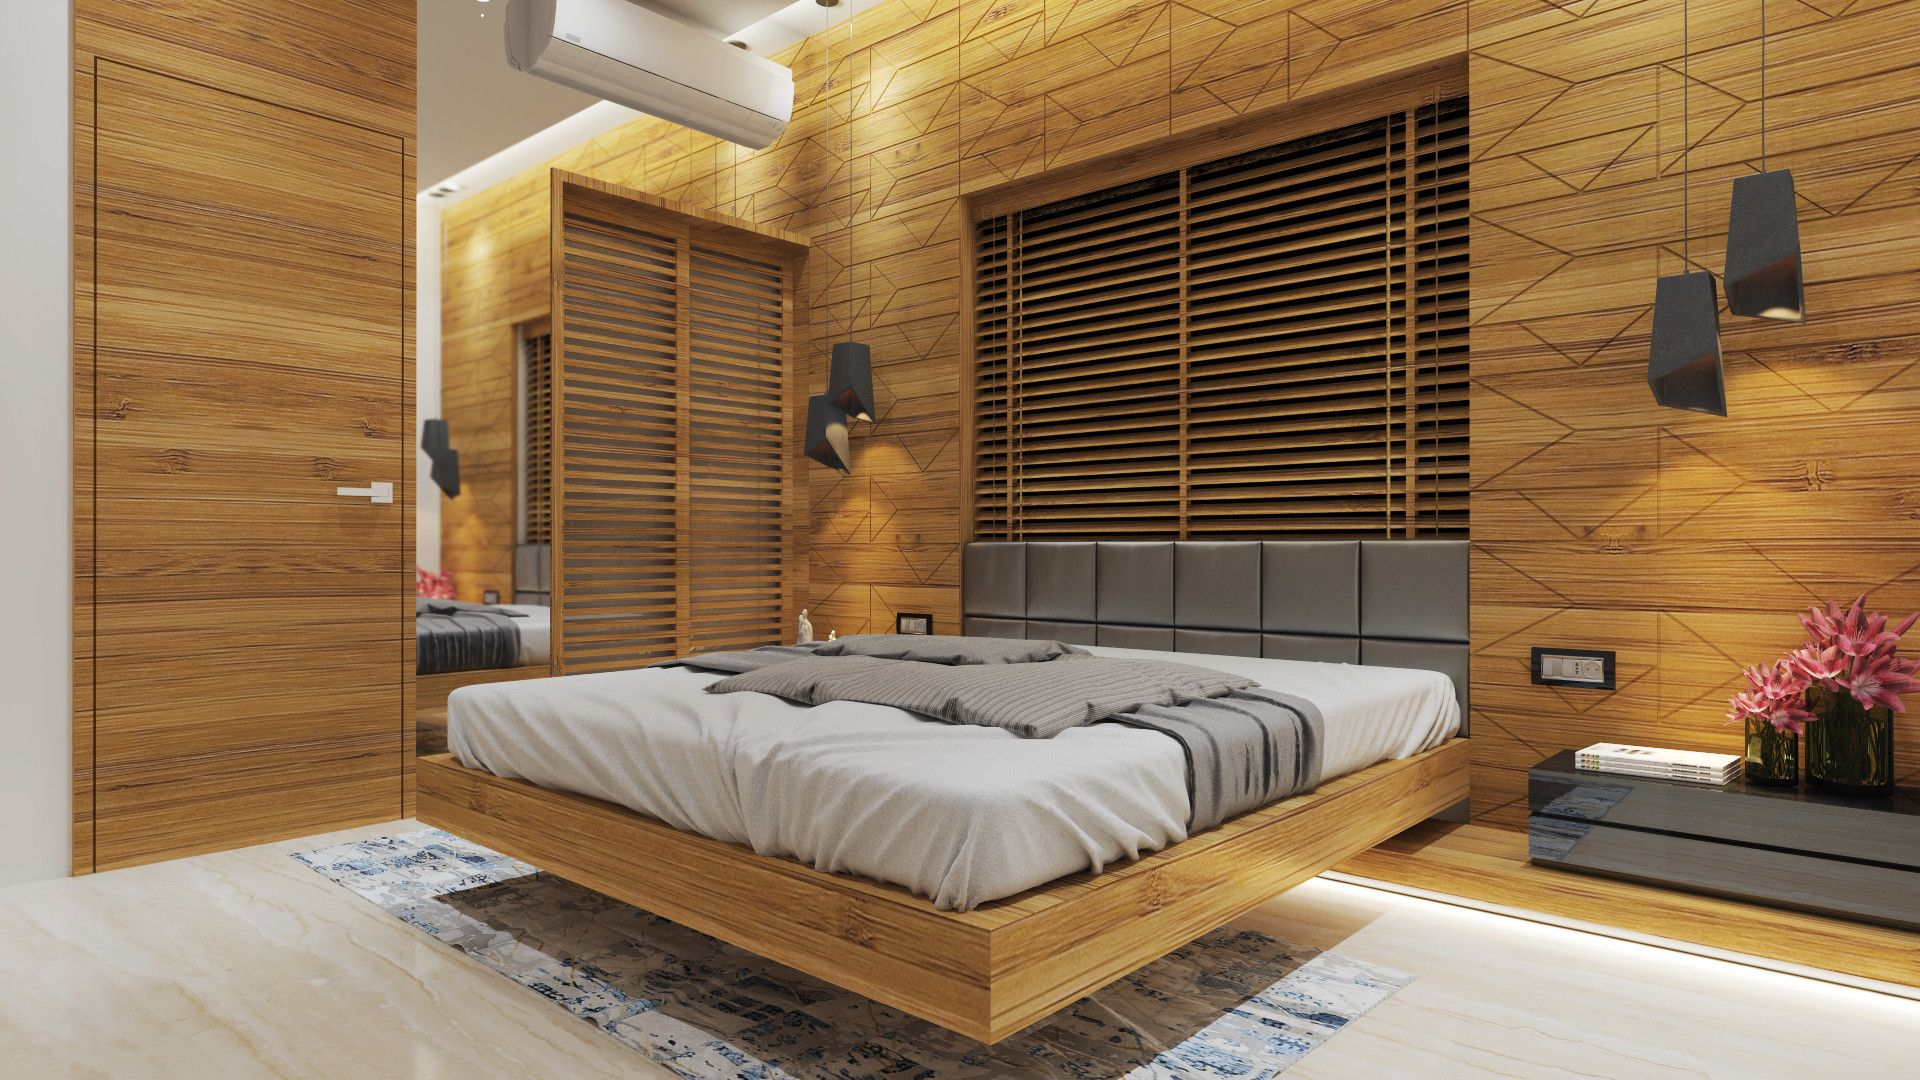 wall hung bed with upholstered back rest and wooden paneling